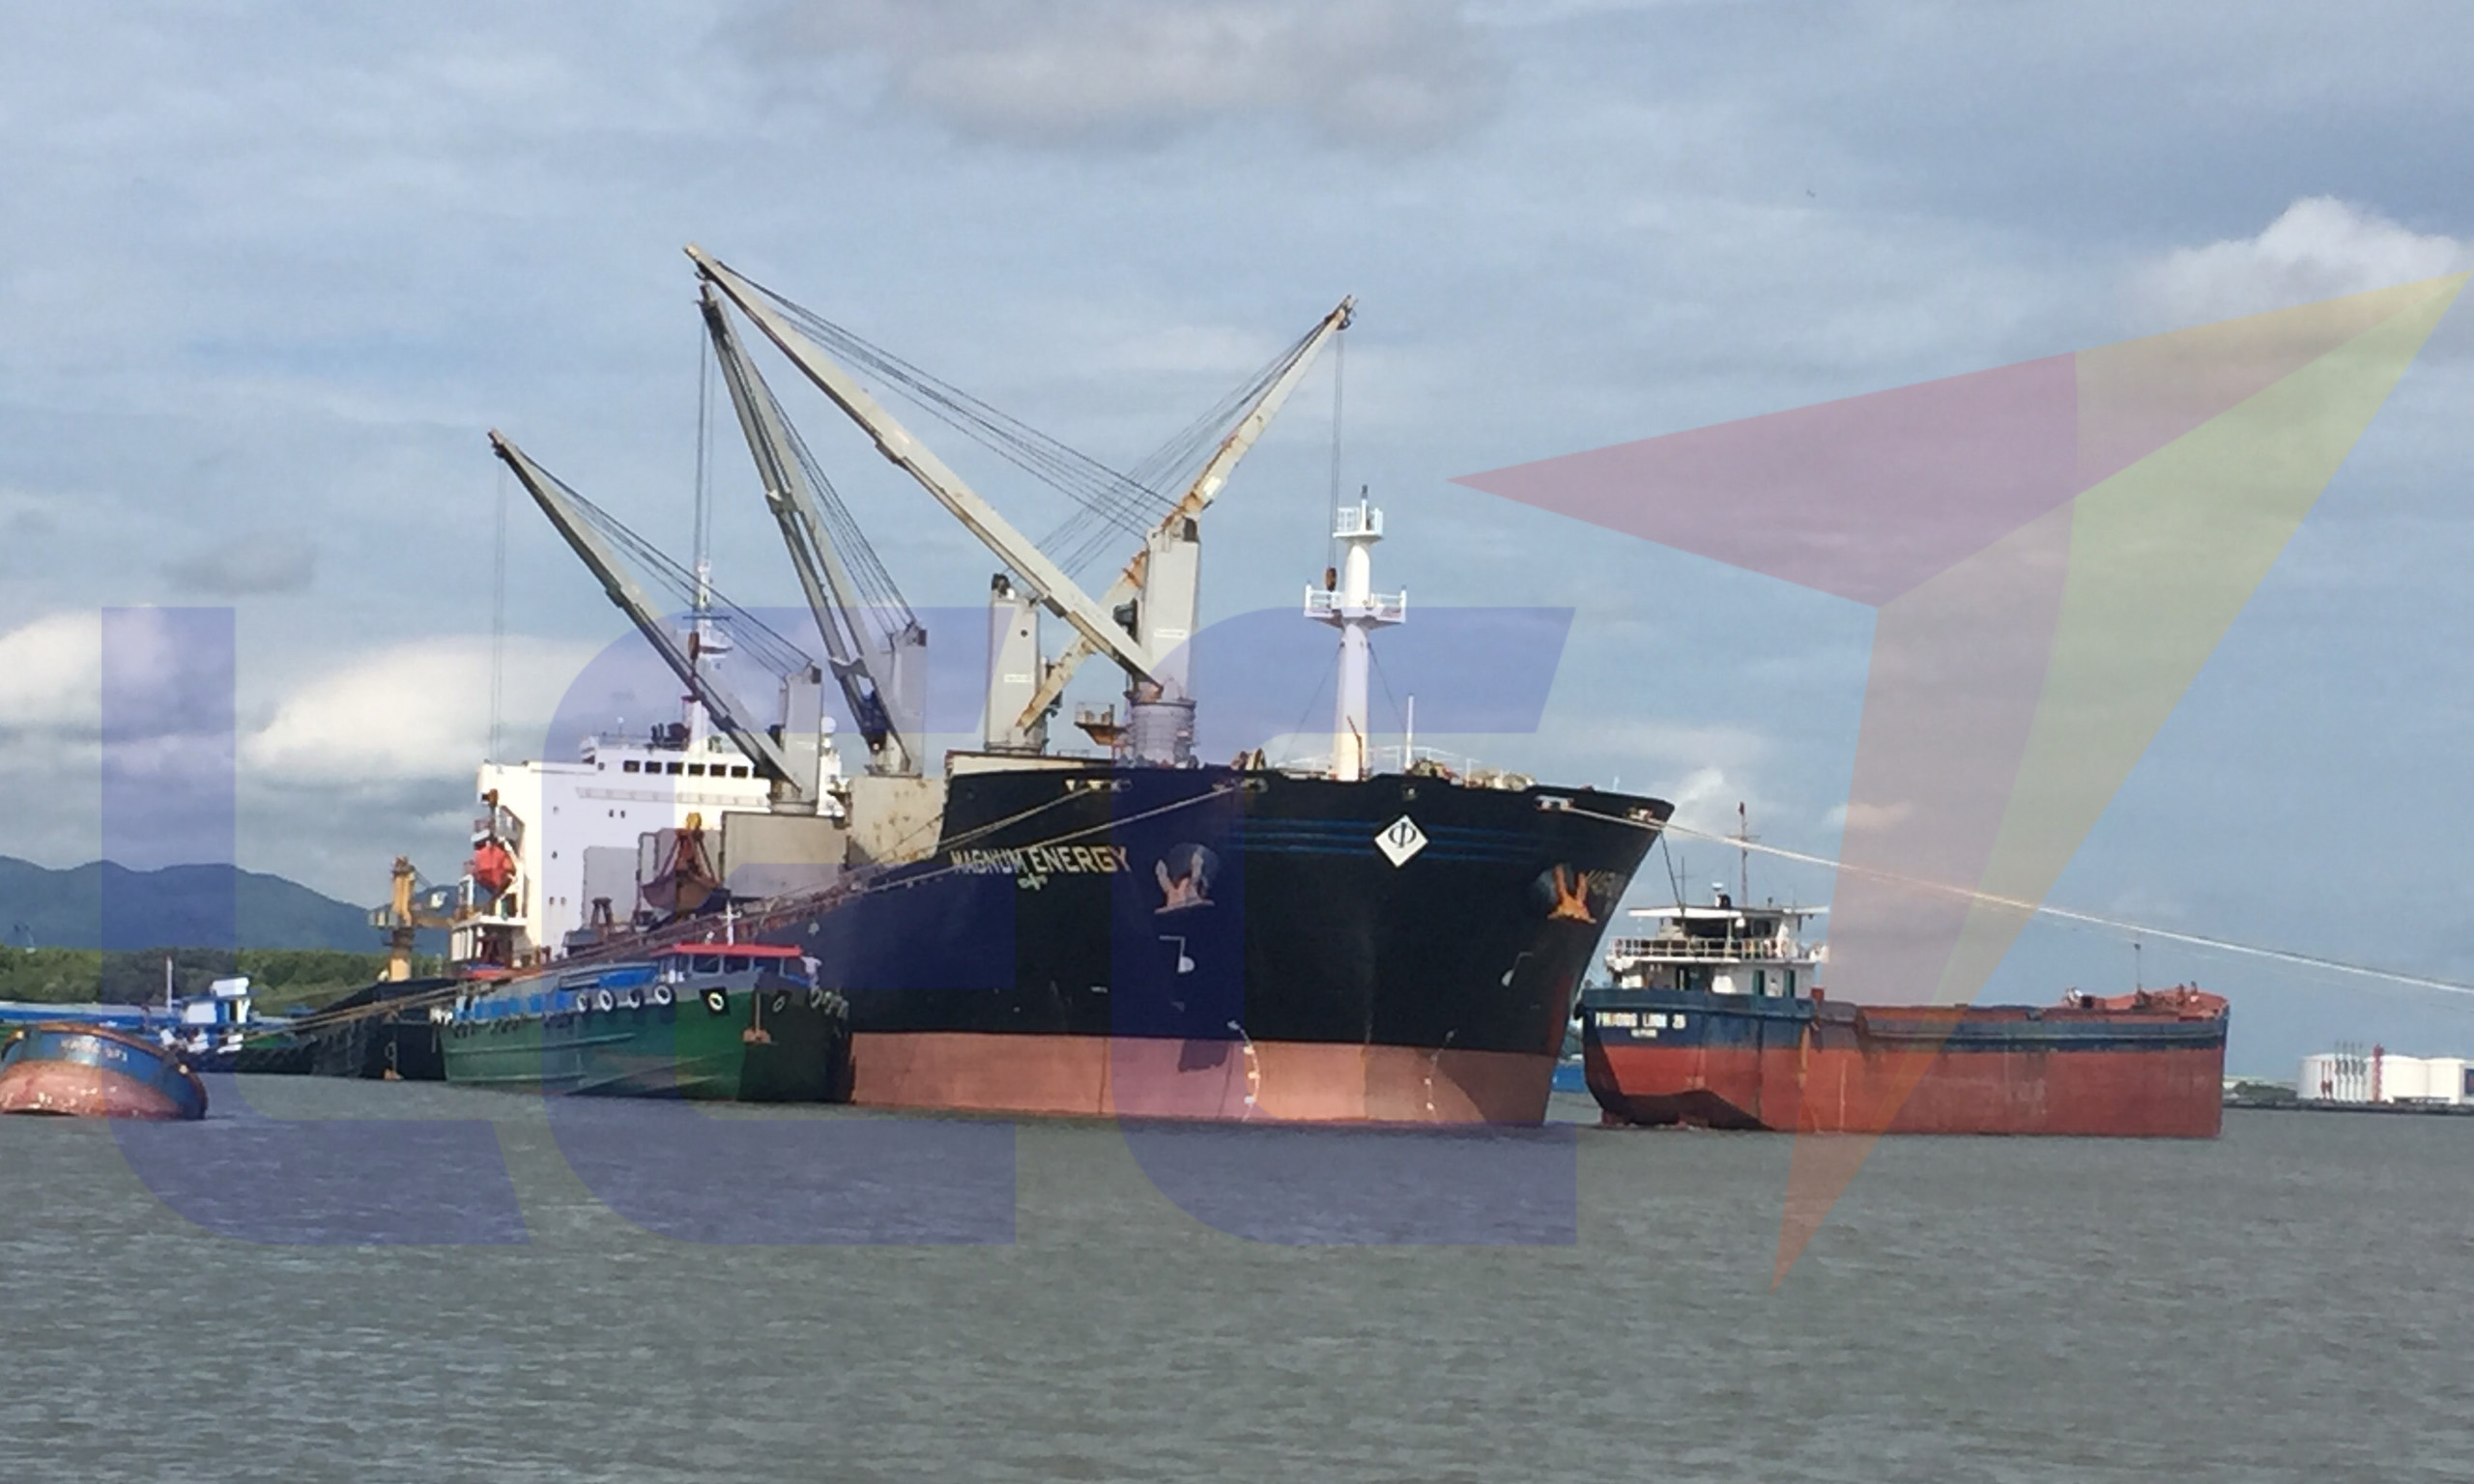 Conditions of loading and unloading goods in the charter ship charter